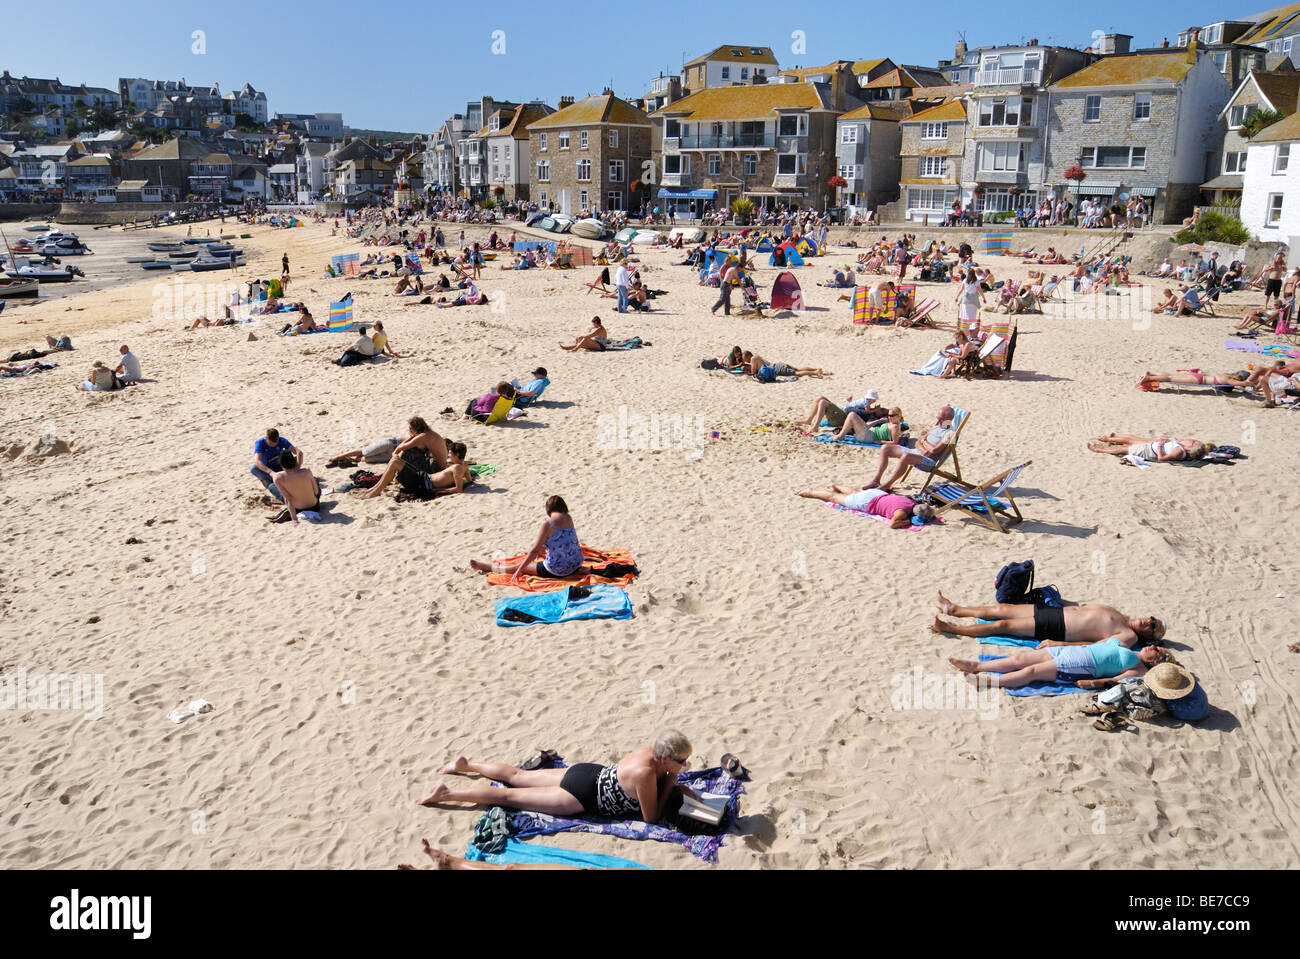 Sunbathers on a sandy beach in St Ives harbour - Stock Image